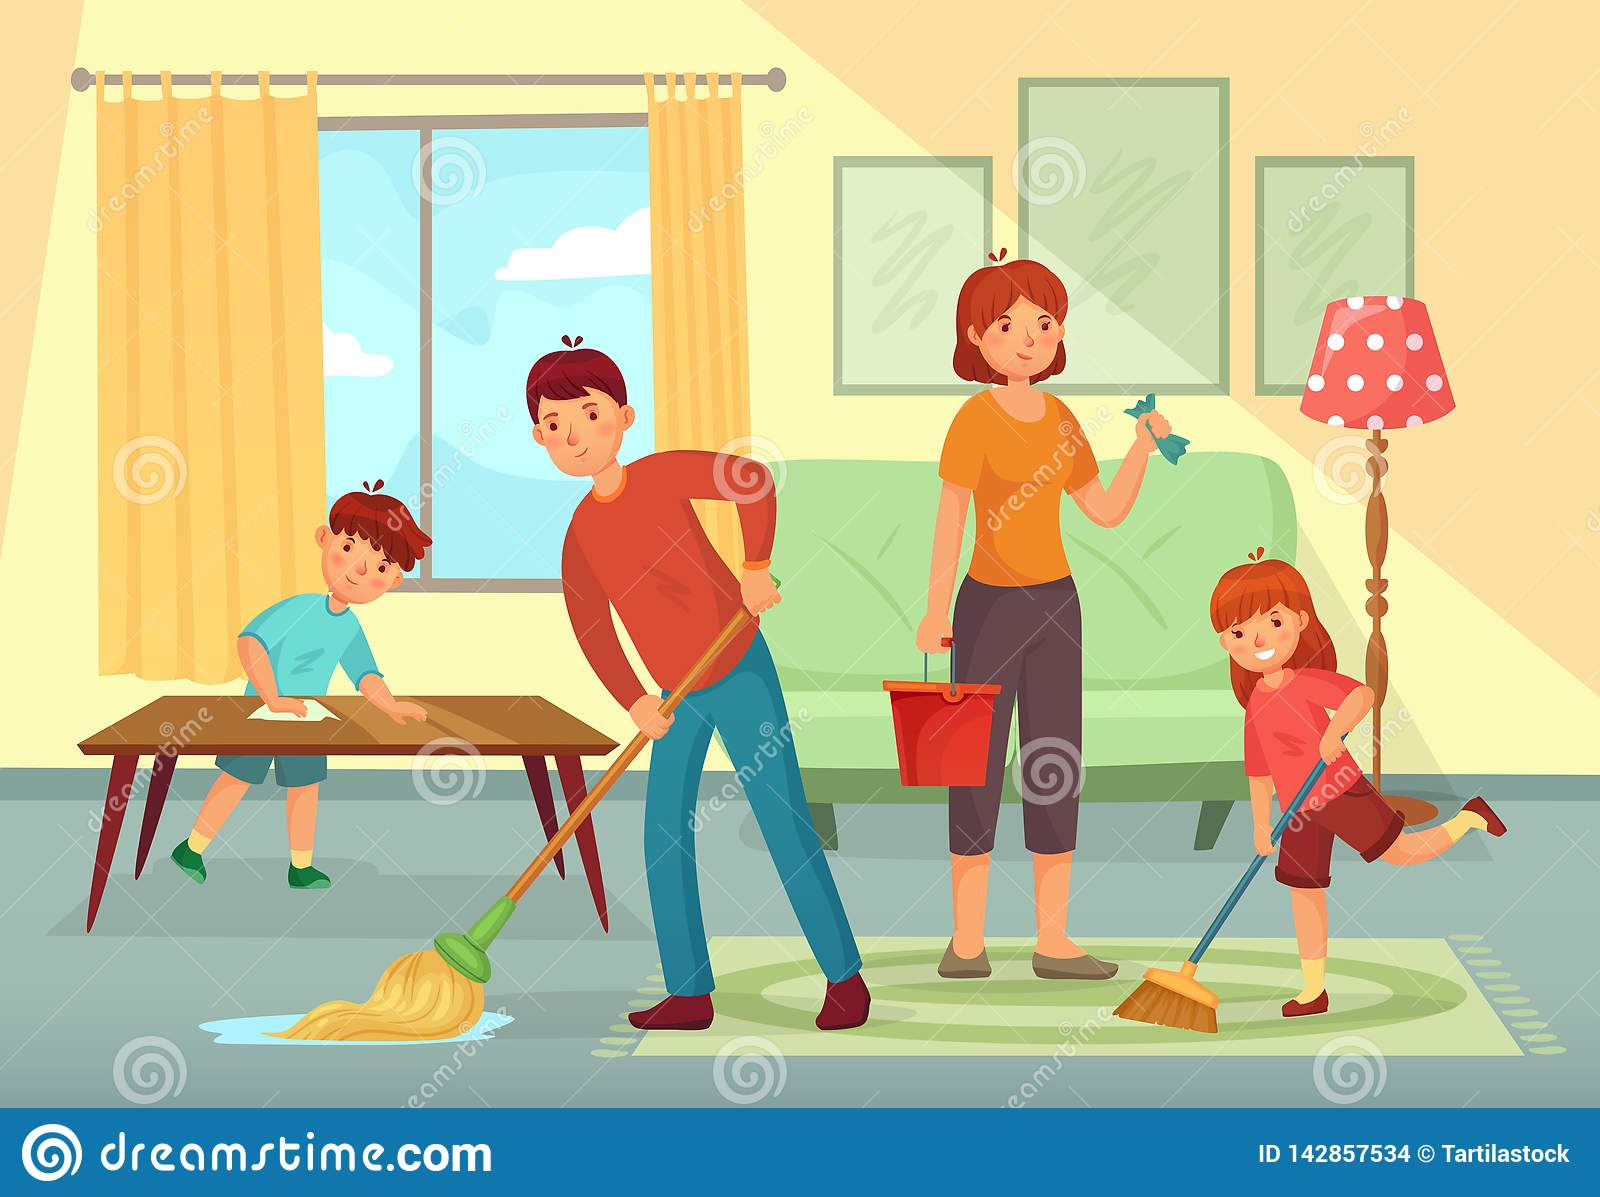 Family cleaning house. Father, mother and kids cleaning living room together housework cartoon vector illustration